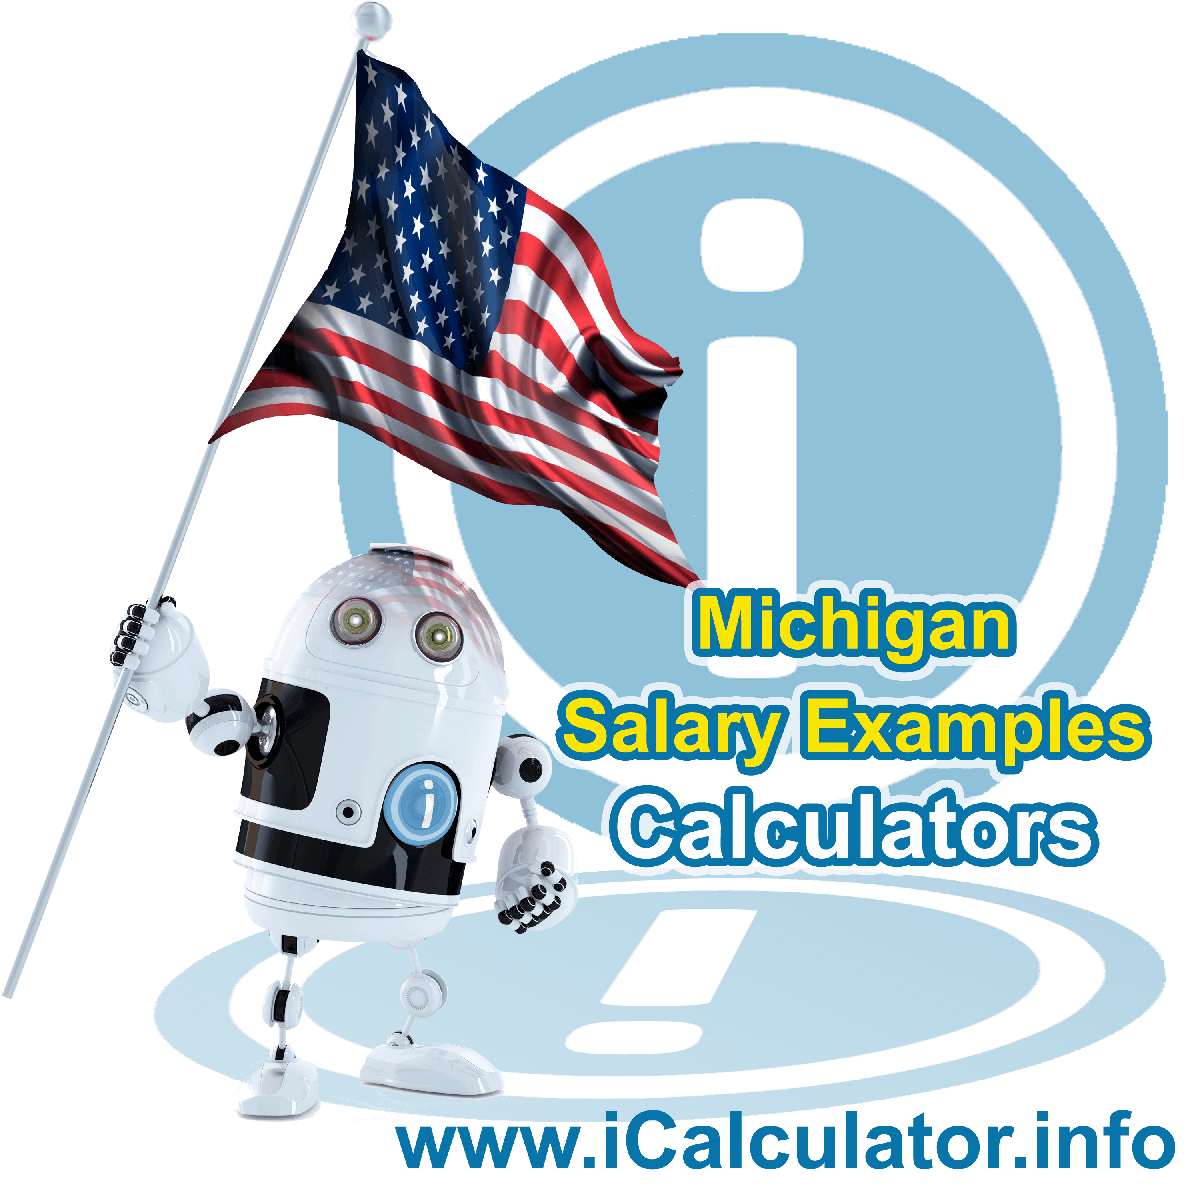 Michigan Salary Example for $170,000.00 in 2020 | iCalculator | $170,000.00 salary example for employee and employer paying Michigan State tincome taxes. Detailed salary after tax calculation including Michigan State Tax, Federal State Tax, Medicare Deductions, Social Security, Capital Gains and other income tax and salary deductions complete with supporting Michigan state tax tables